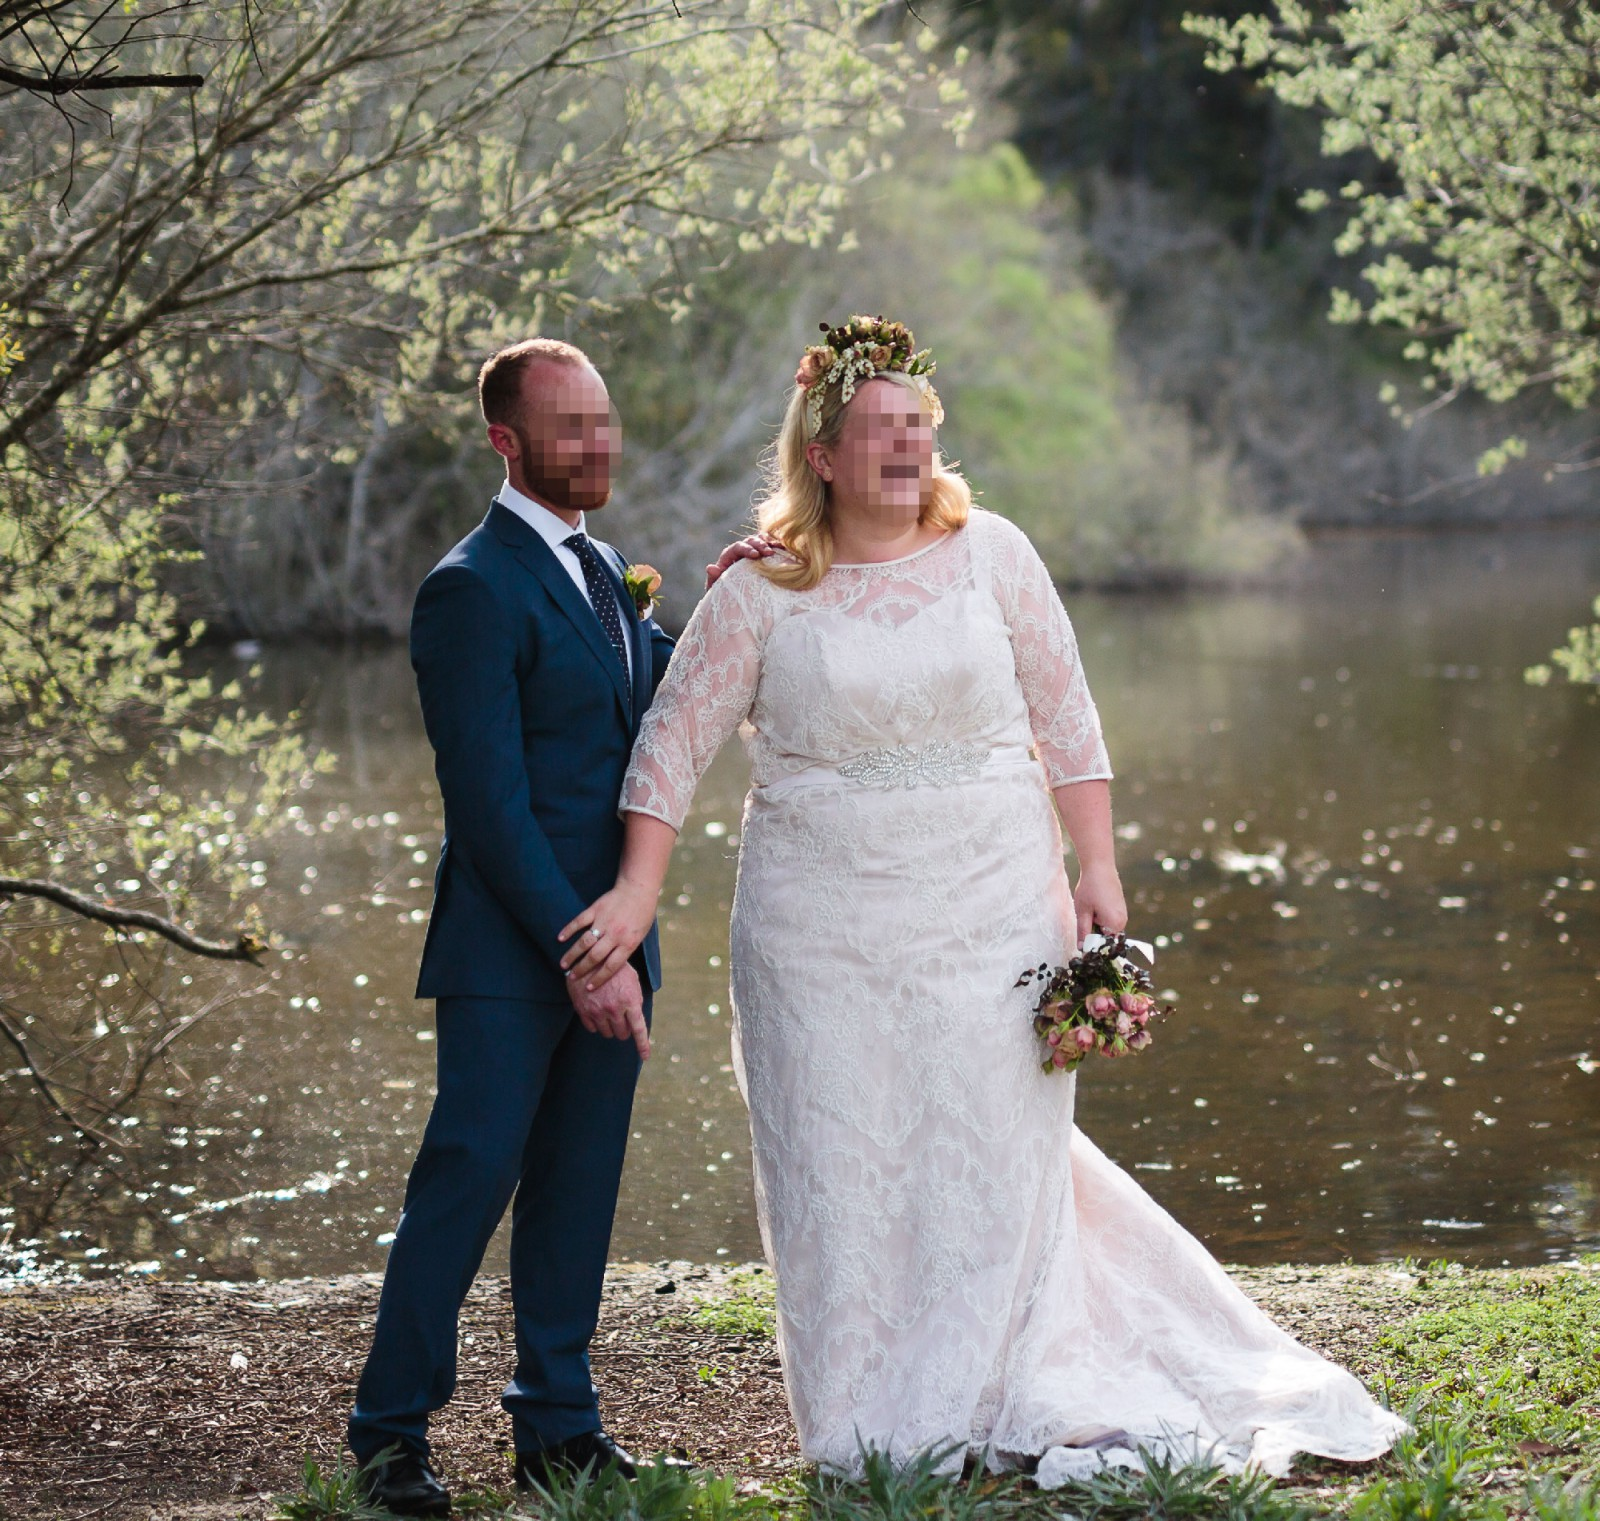 A-Line Second Hand Wedding Dress On Sale 68% Off